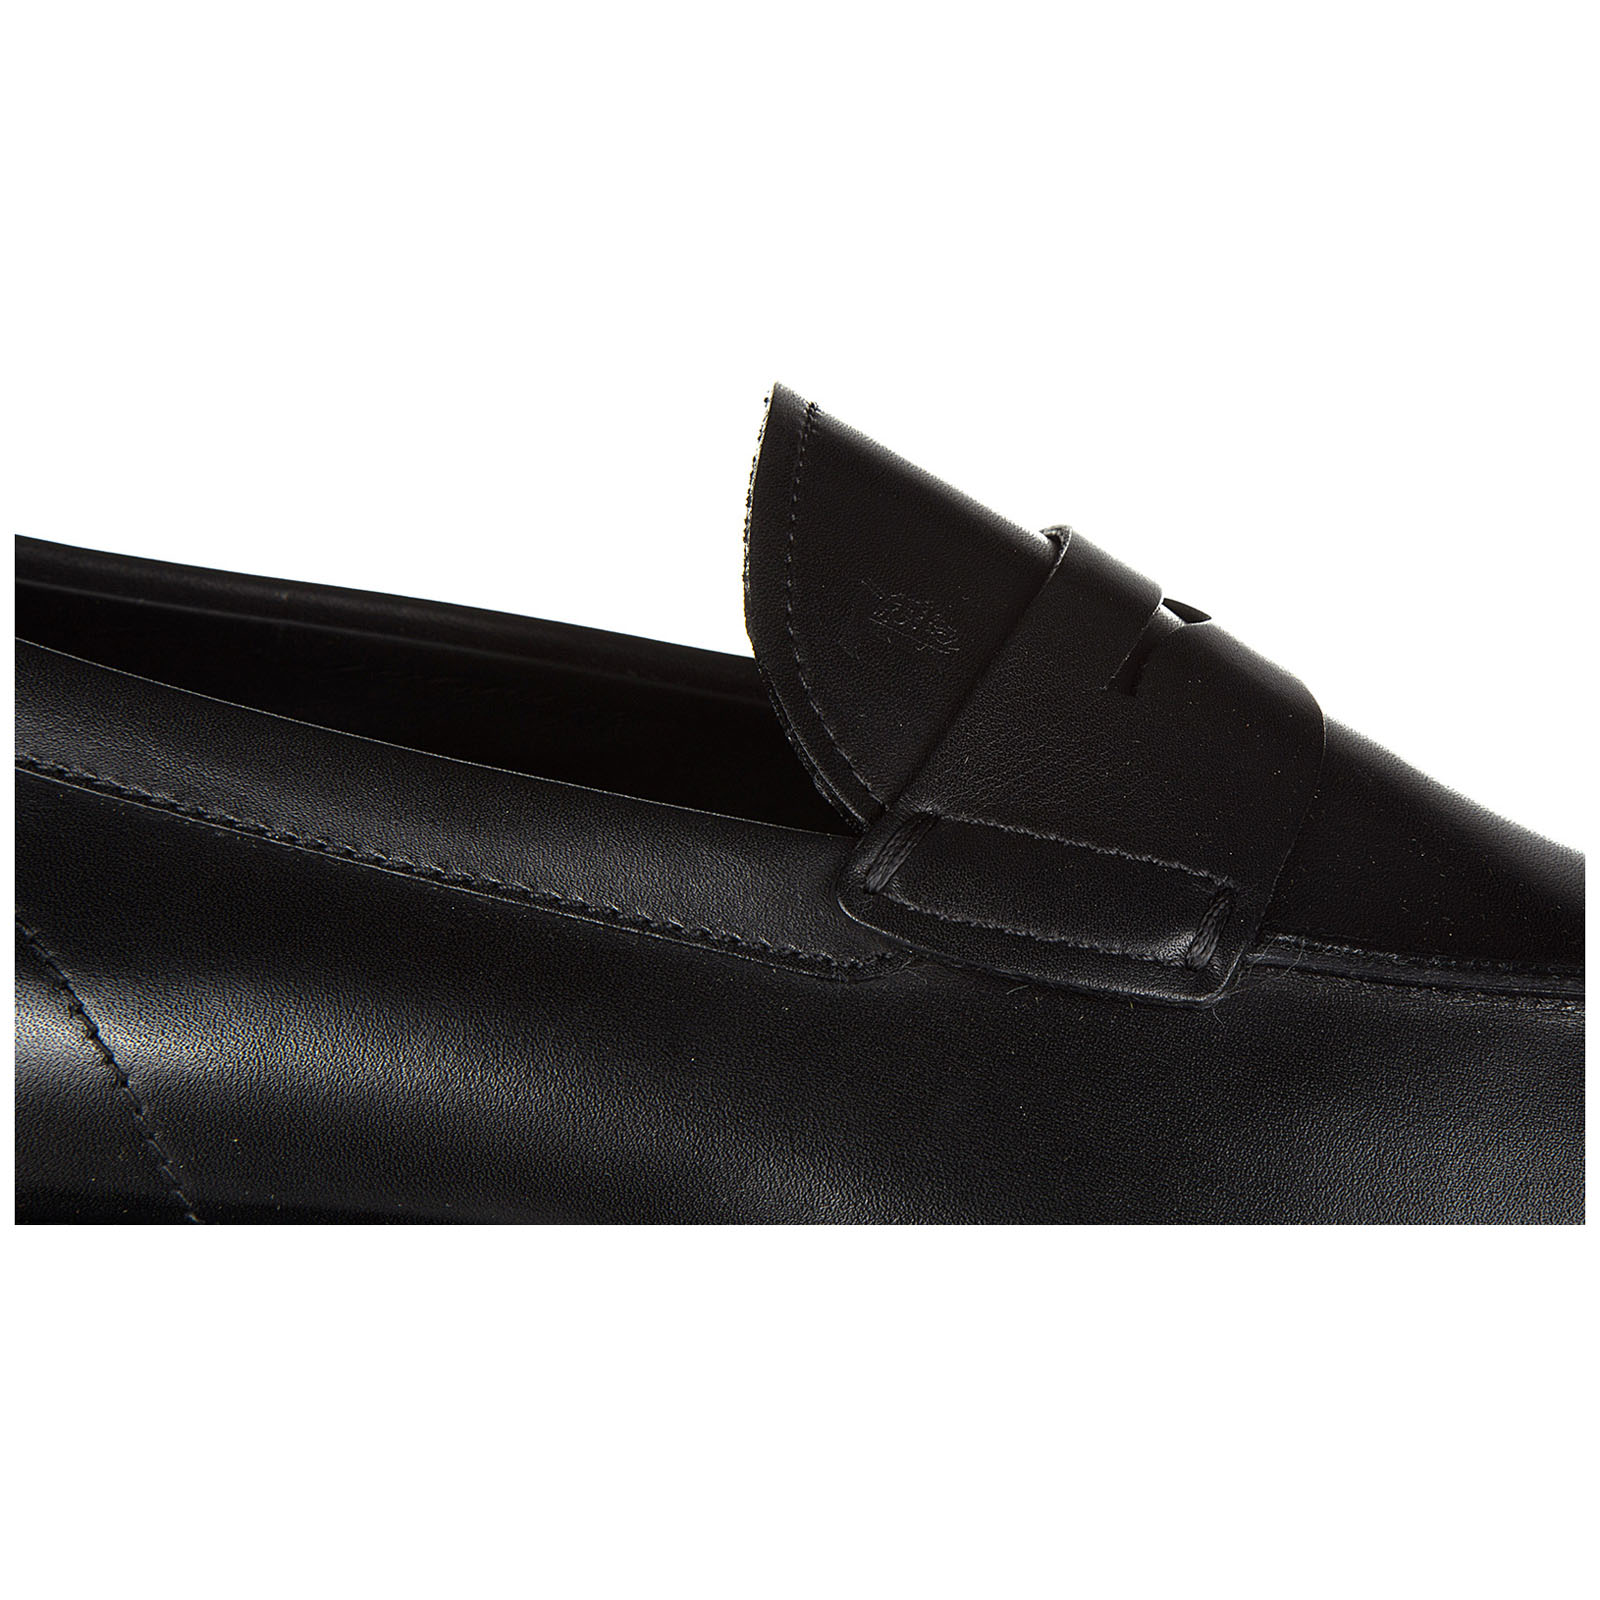 Men's leather loafers moccasins  gomma classico